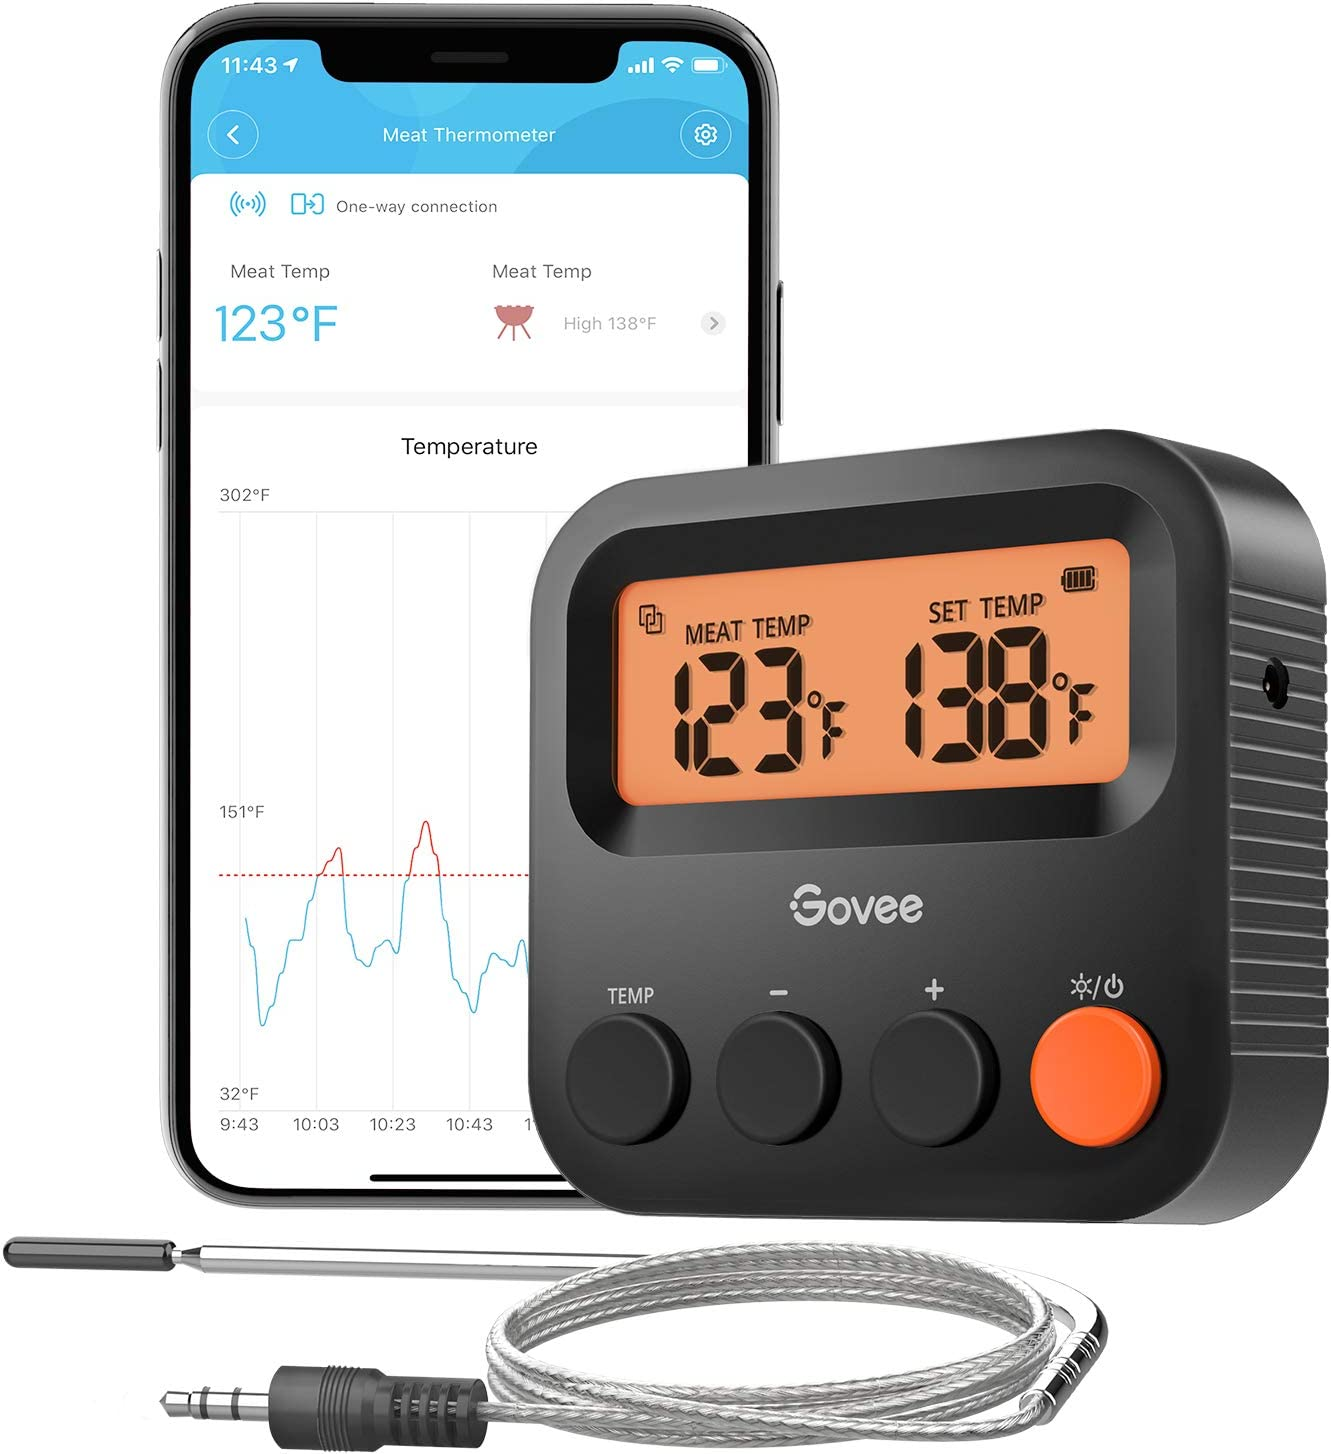 Govee Smart Meat Thermometer, Digital Bluetooth Food Thermometer with 1 Probe, LCD Backlight Screen, 230ft Remote Control, Alert Notification for Grill BBQ Smoker Oven